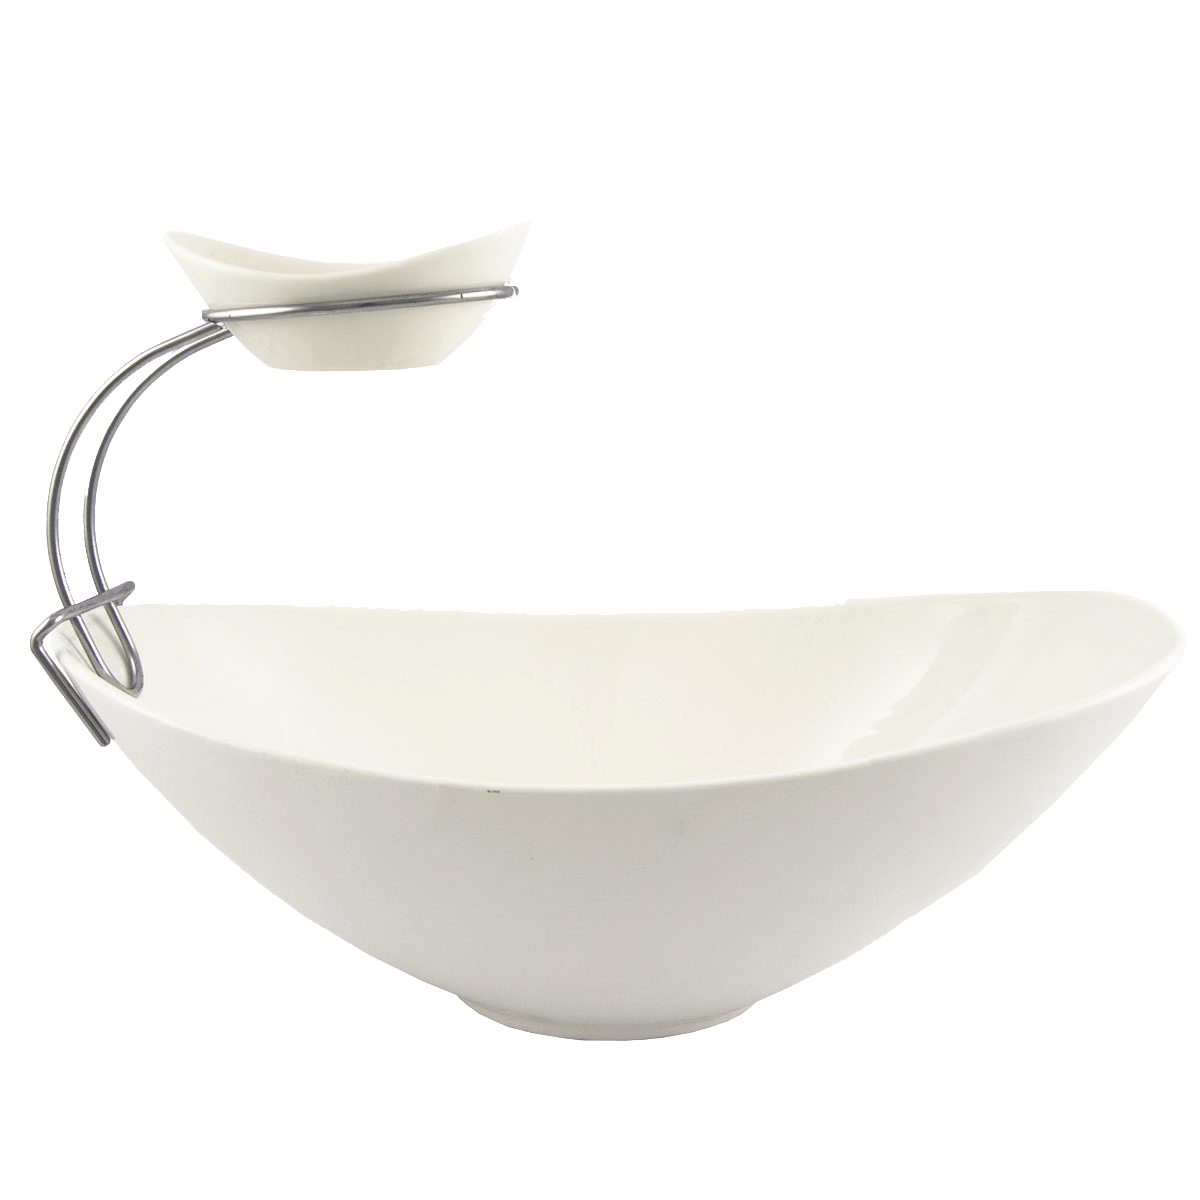 /uploads/UserFiles/Images/Products%2Fwhite-porcelain%2Fsoup-bowl%2Fsauce-dish-ks-min.png